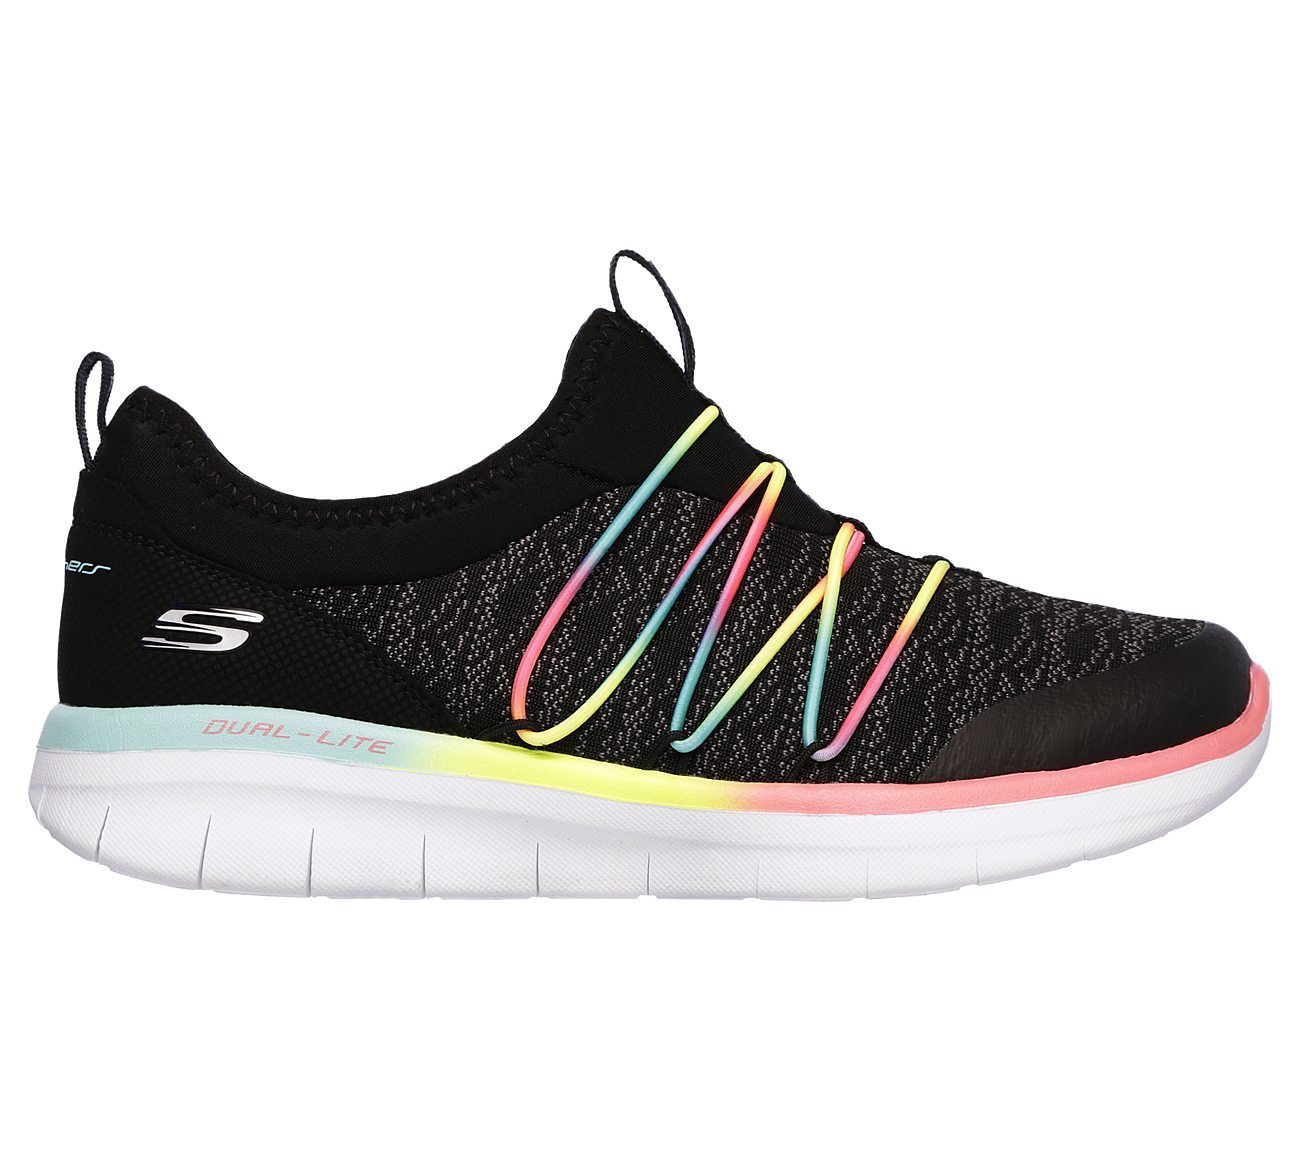 SKECHERS Synergy 2.0 - Simply Chic 2Tk7I